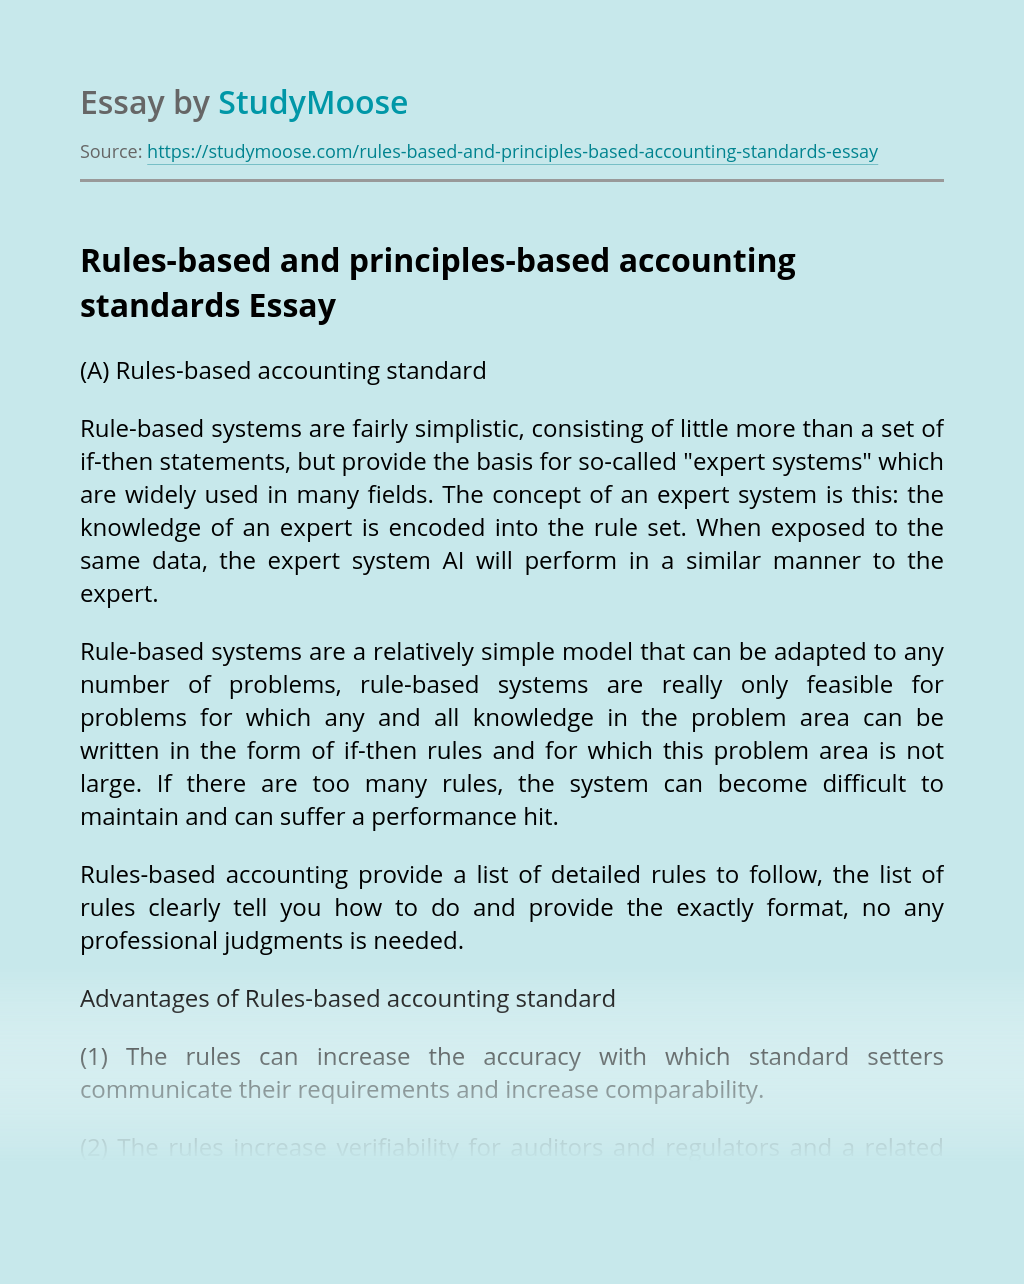 Rules-based and principles-based accounting standards